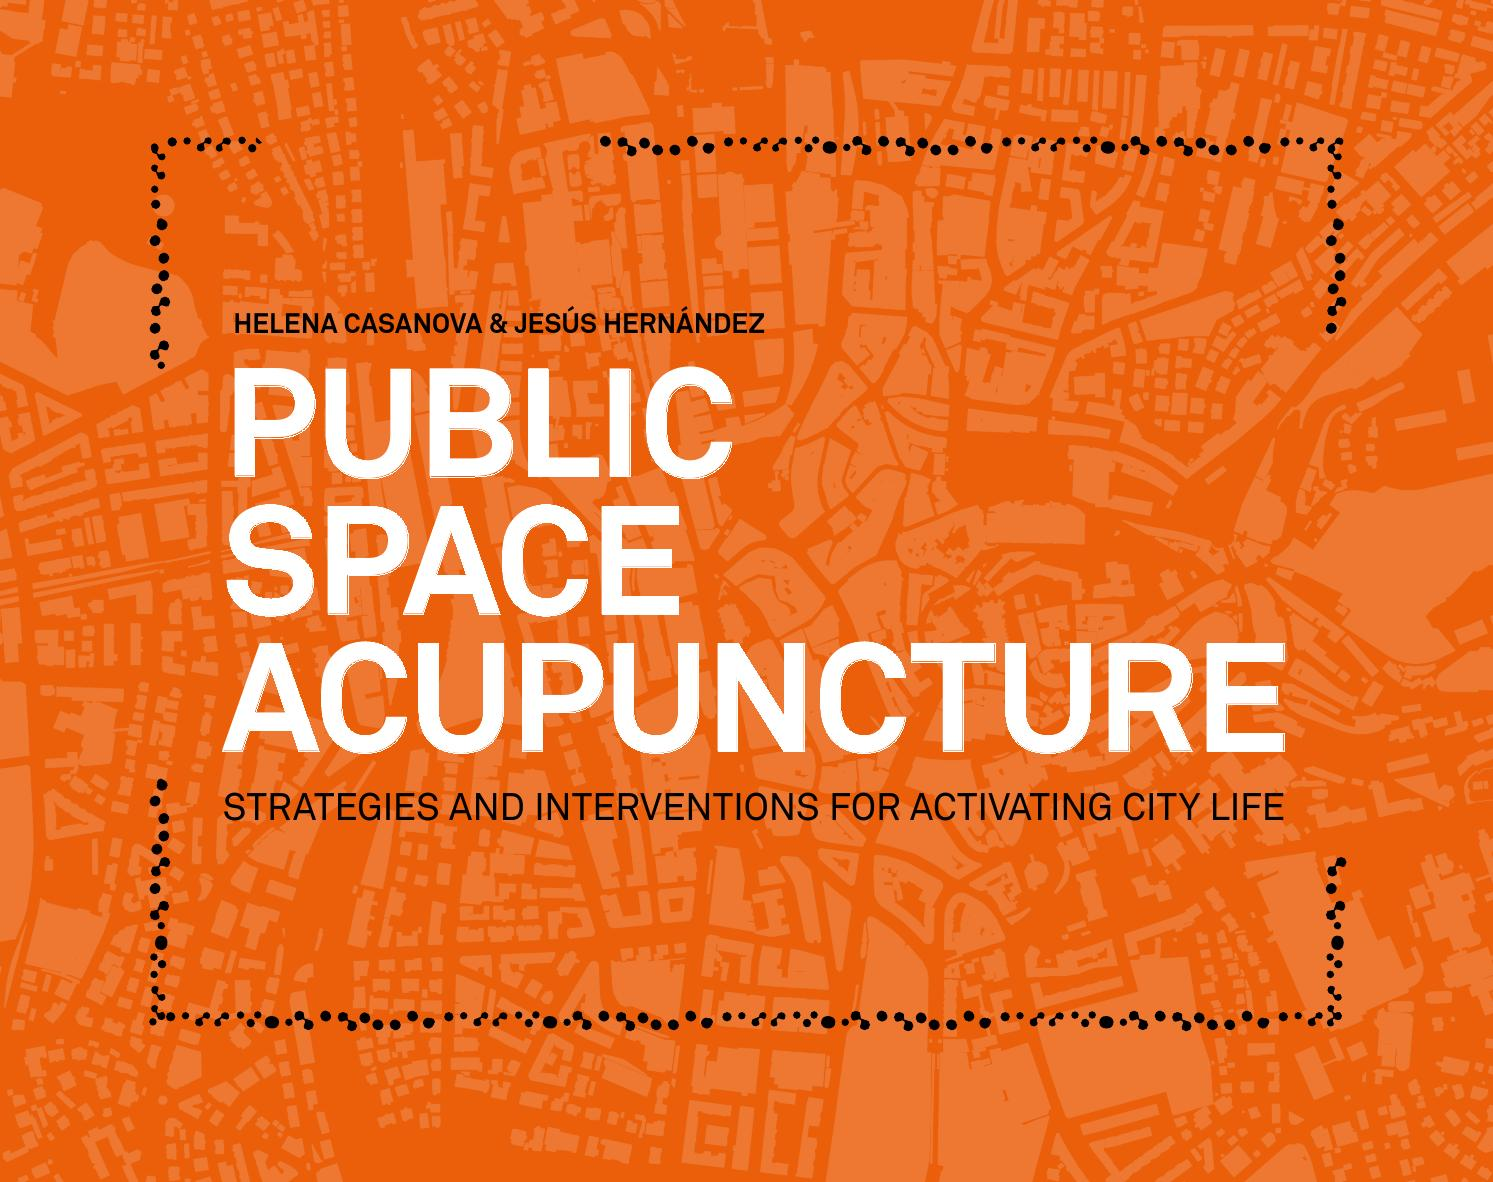 Public Space Acupuncture By Actar Publishers Issuu